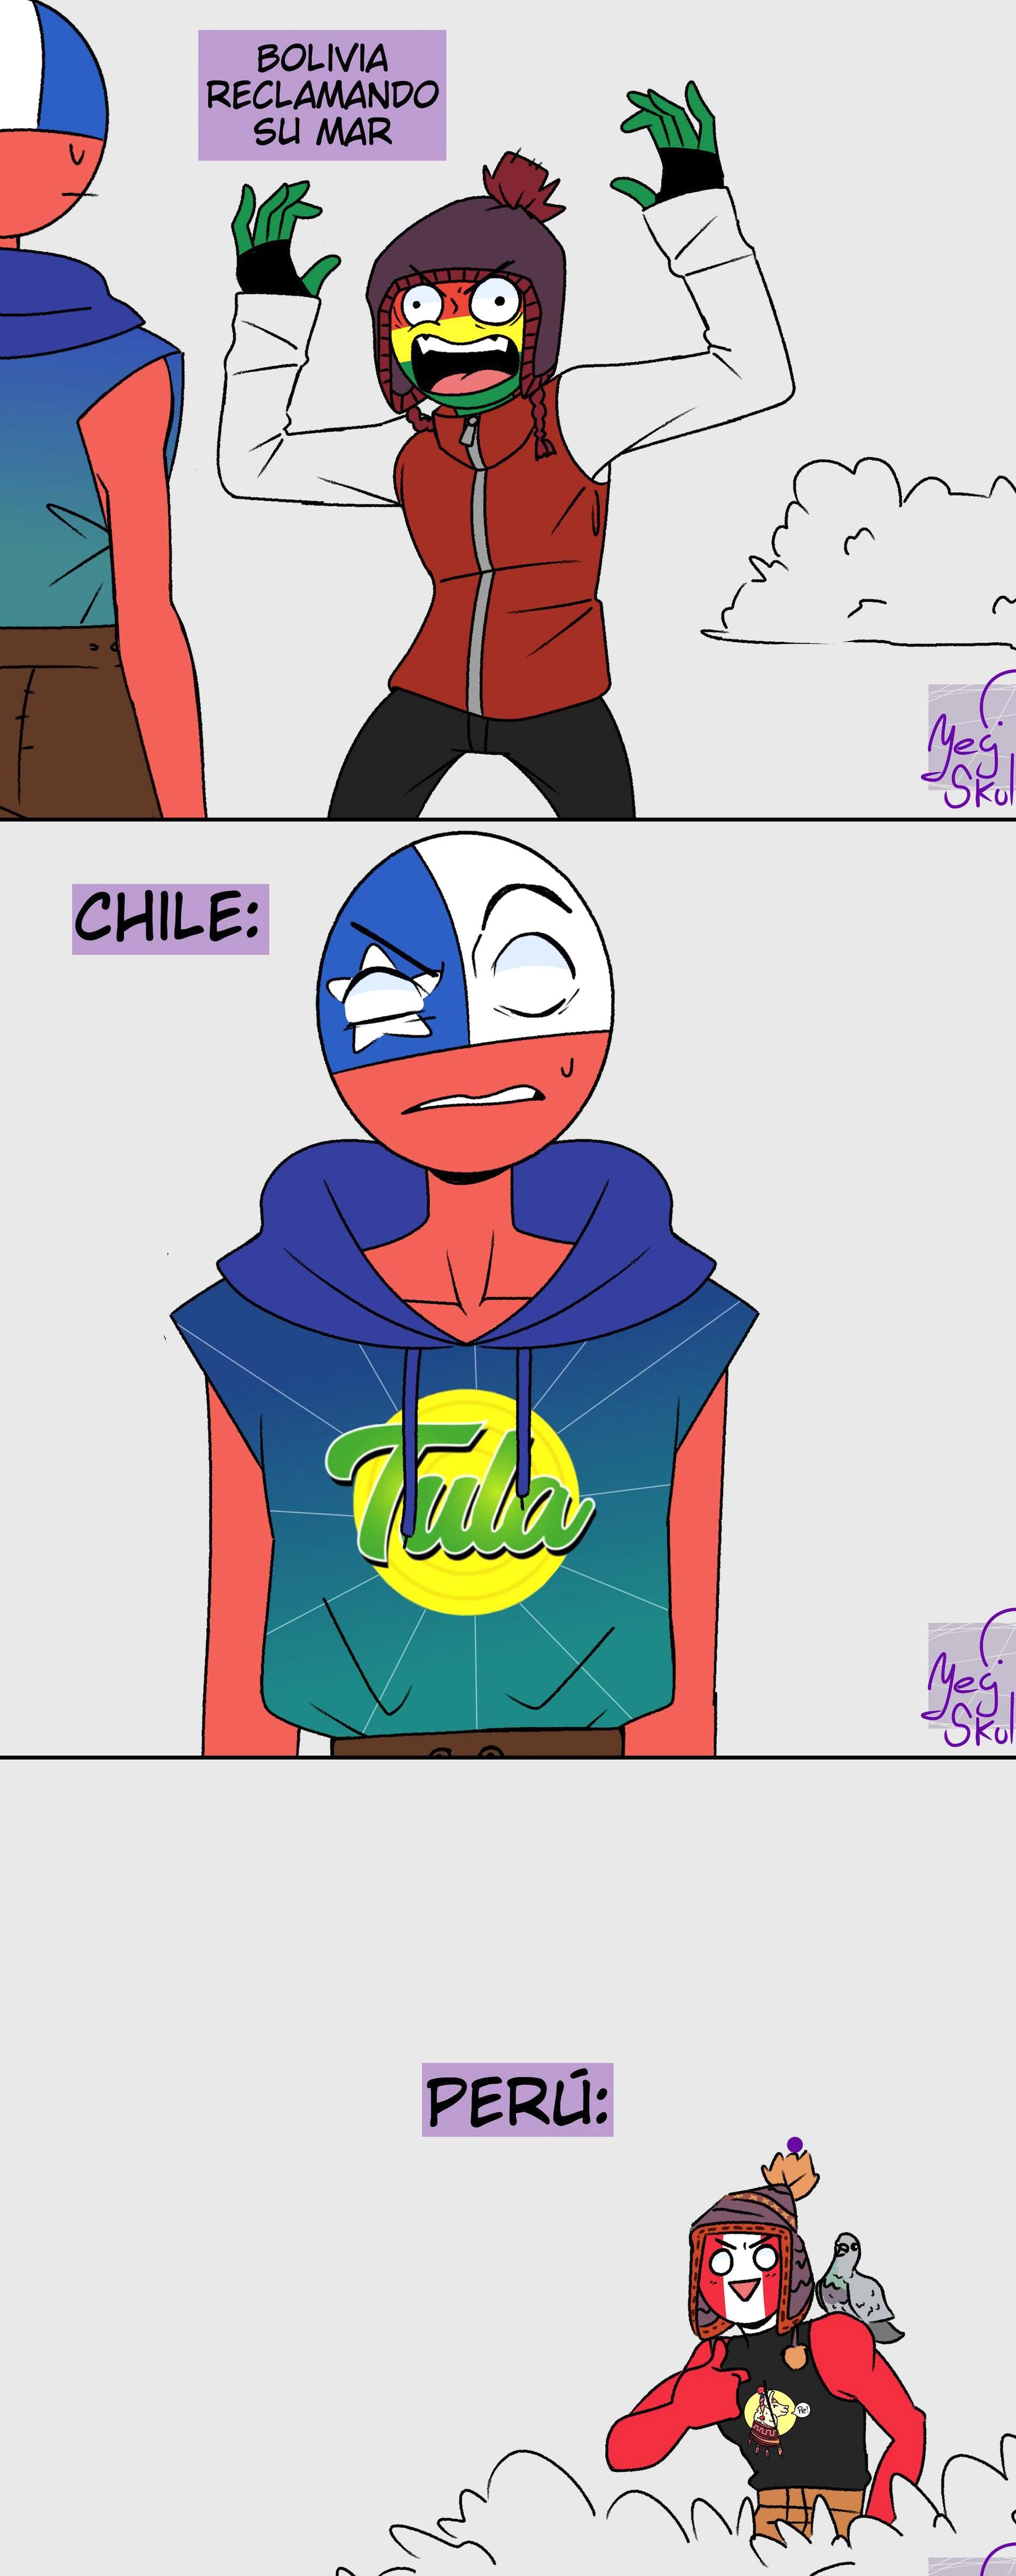 Bolivia Chile Per Peru Countryhumans Toothless Presents Himself Meme By Sabakunoyeg Twitter In 2020 Country Memes Photo Book Memes